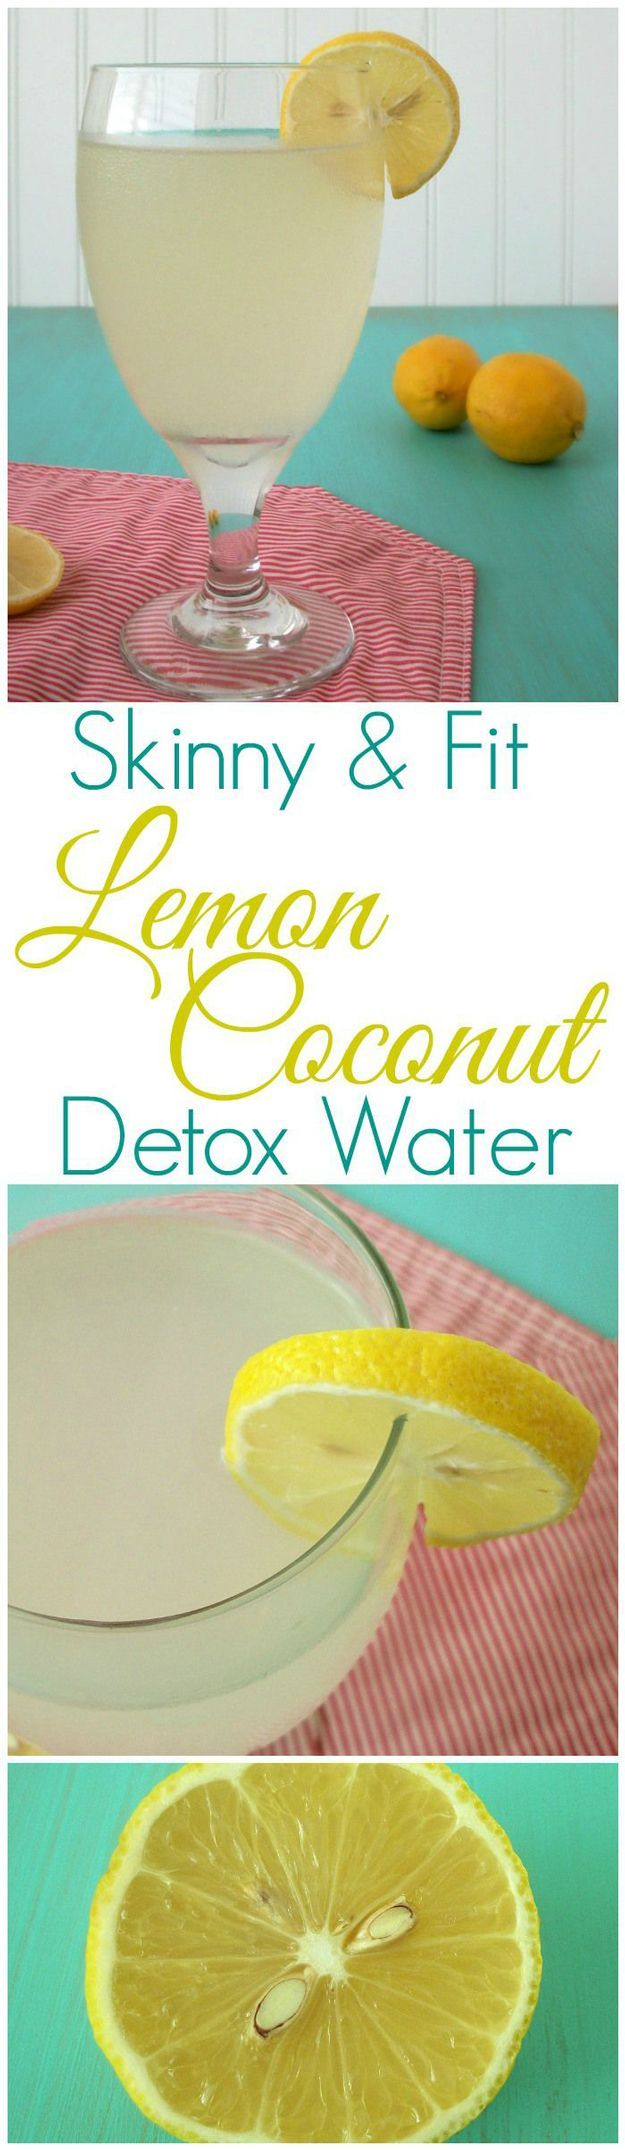 baby booties crochet tutorial DIY Detox with These Easy To Make Refreshing Detox Waters Detox Waters Lemon Coconut and Water Recipes